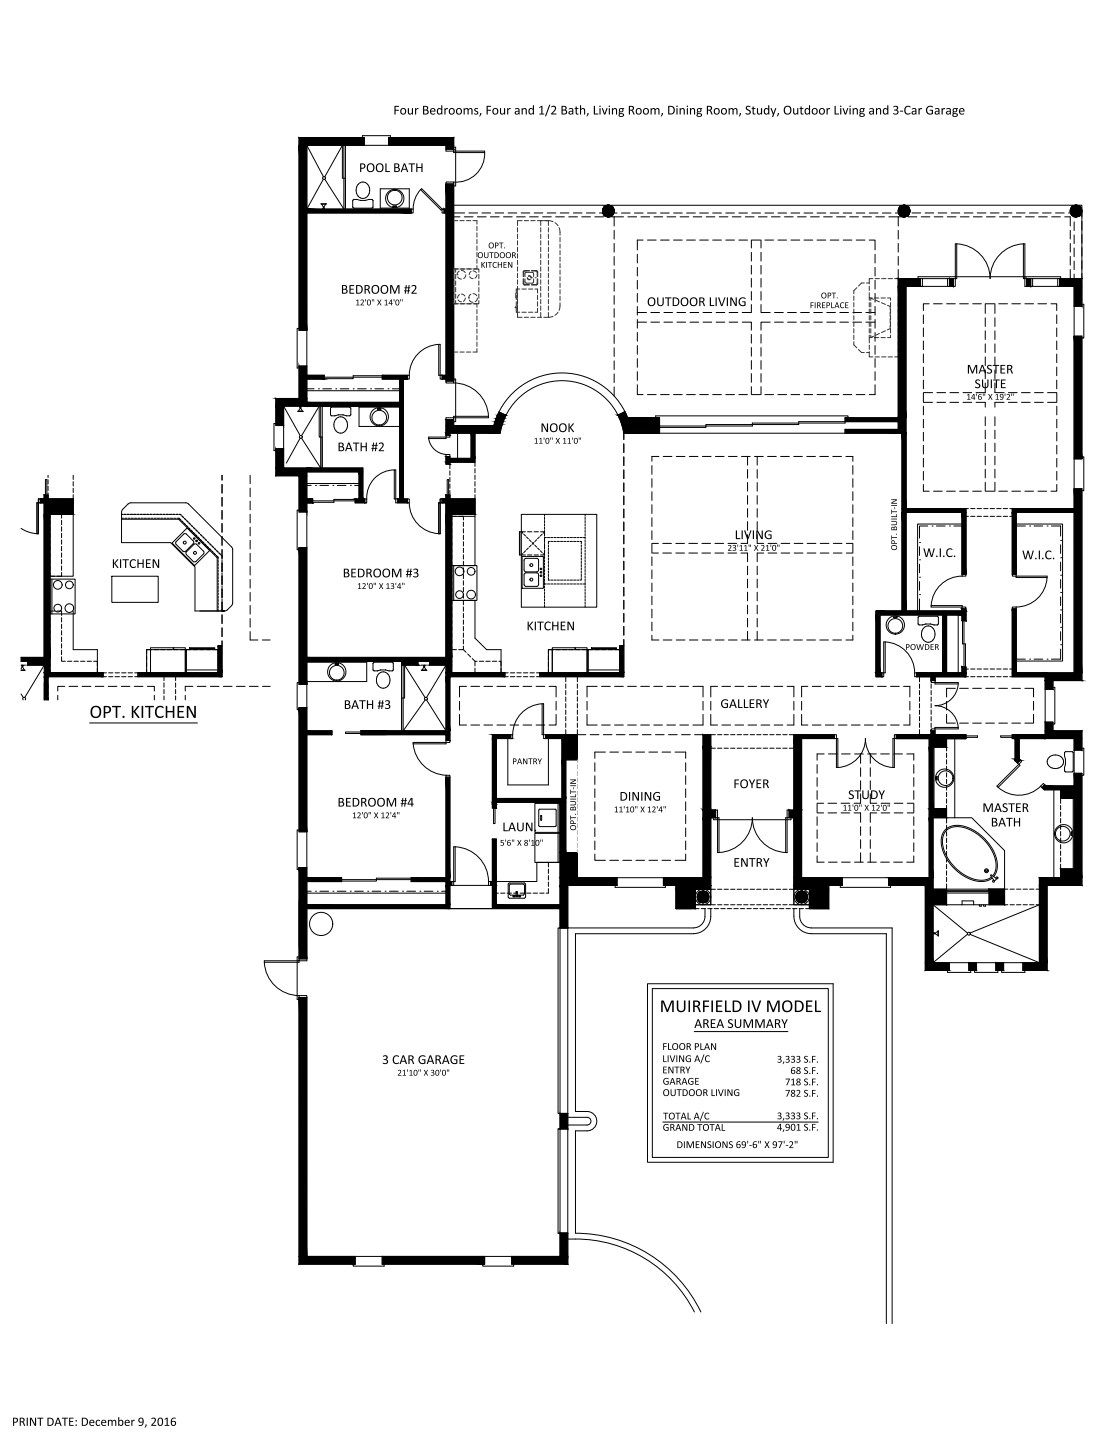 Muirfield IV Floorplan